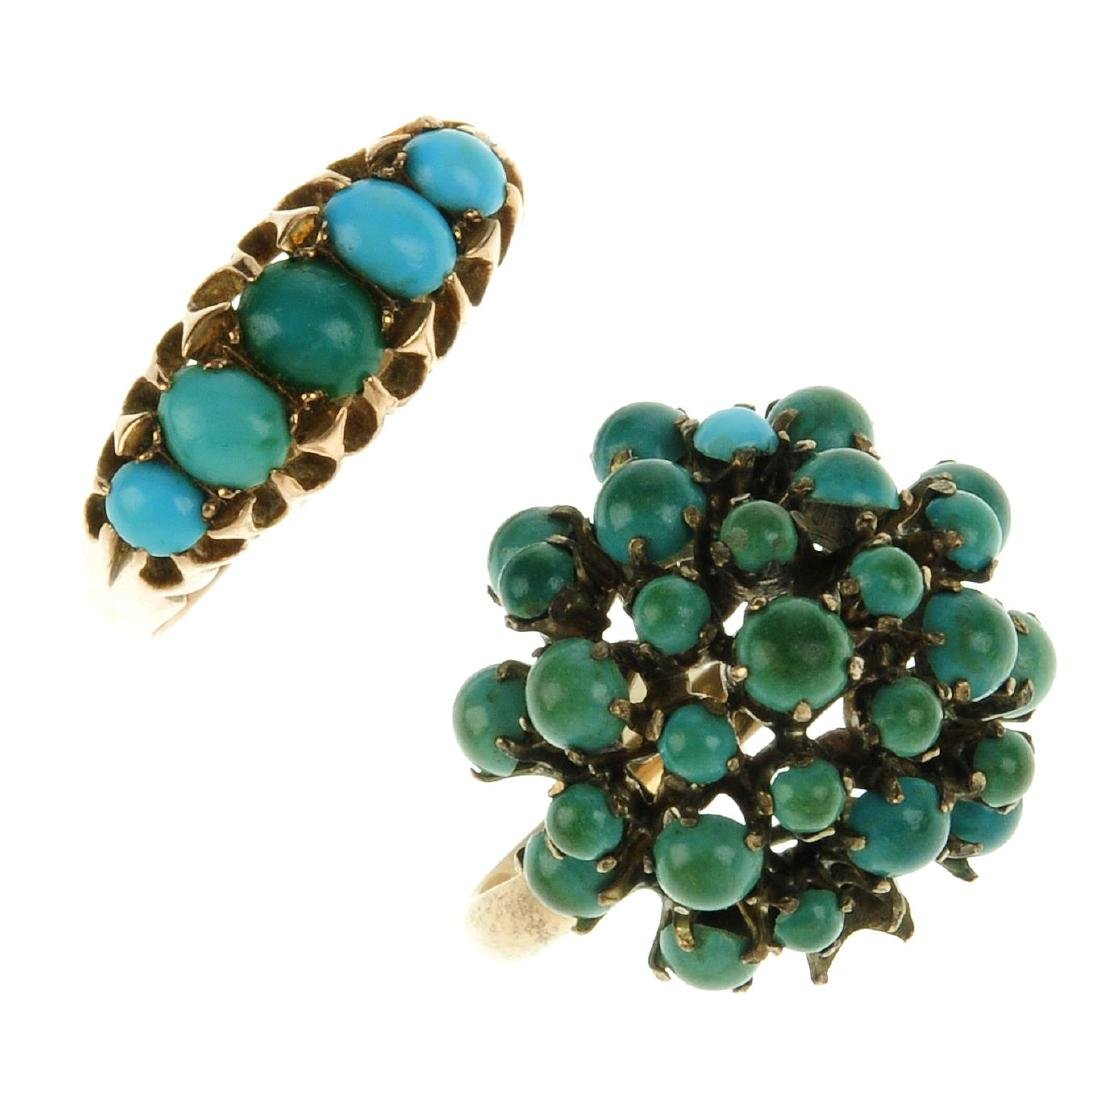 Two turquoise rings. The first an early 20th century